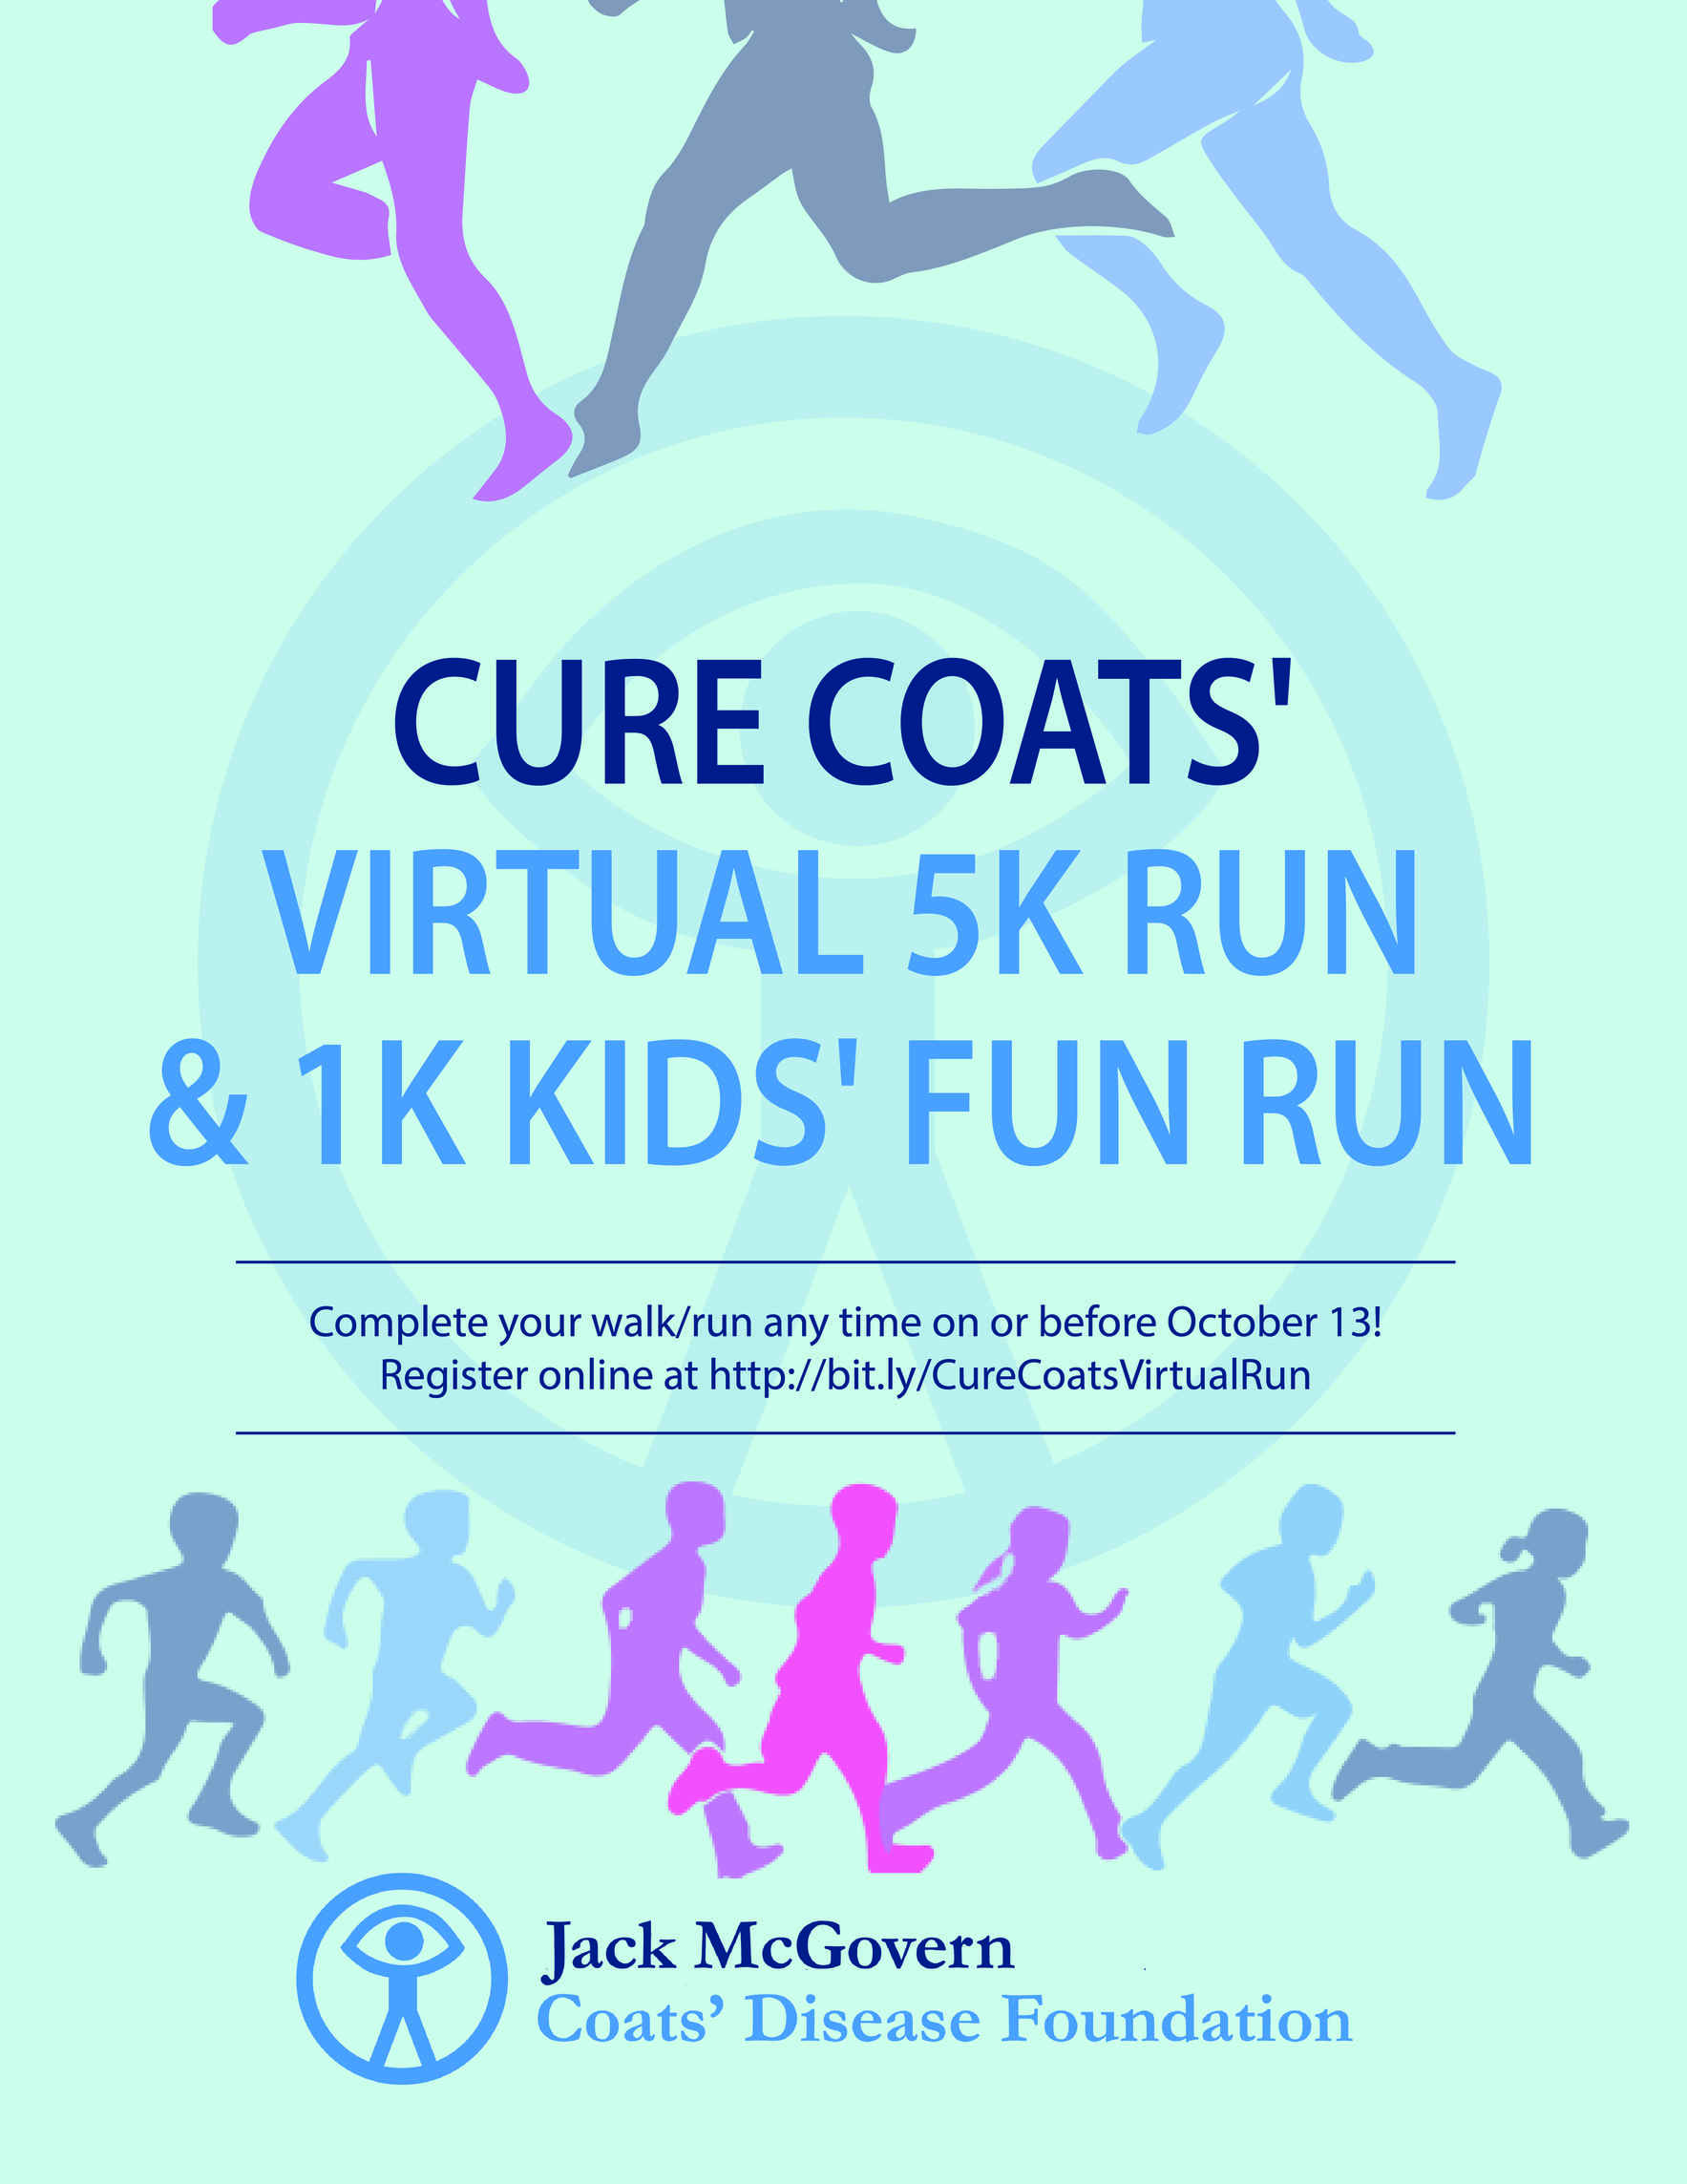 Cure Coats' Virtual 5K Run and 1K Kids' Fun Run image